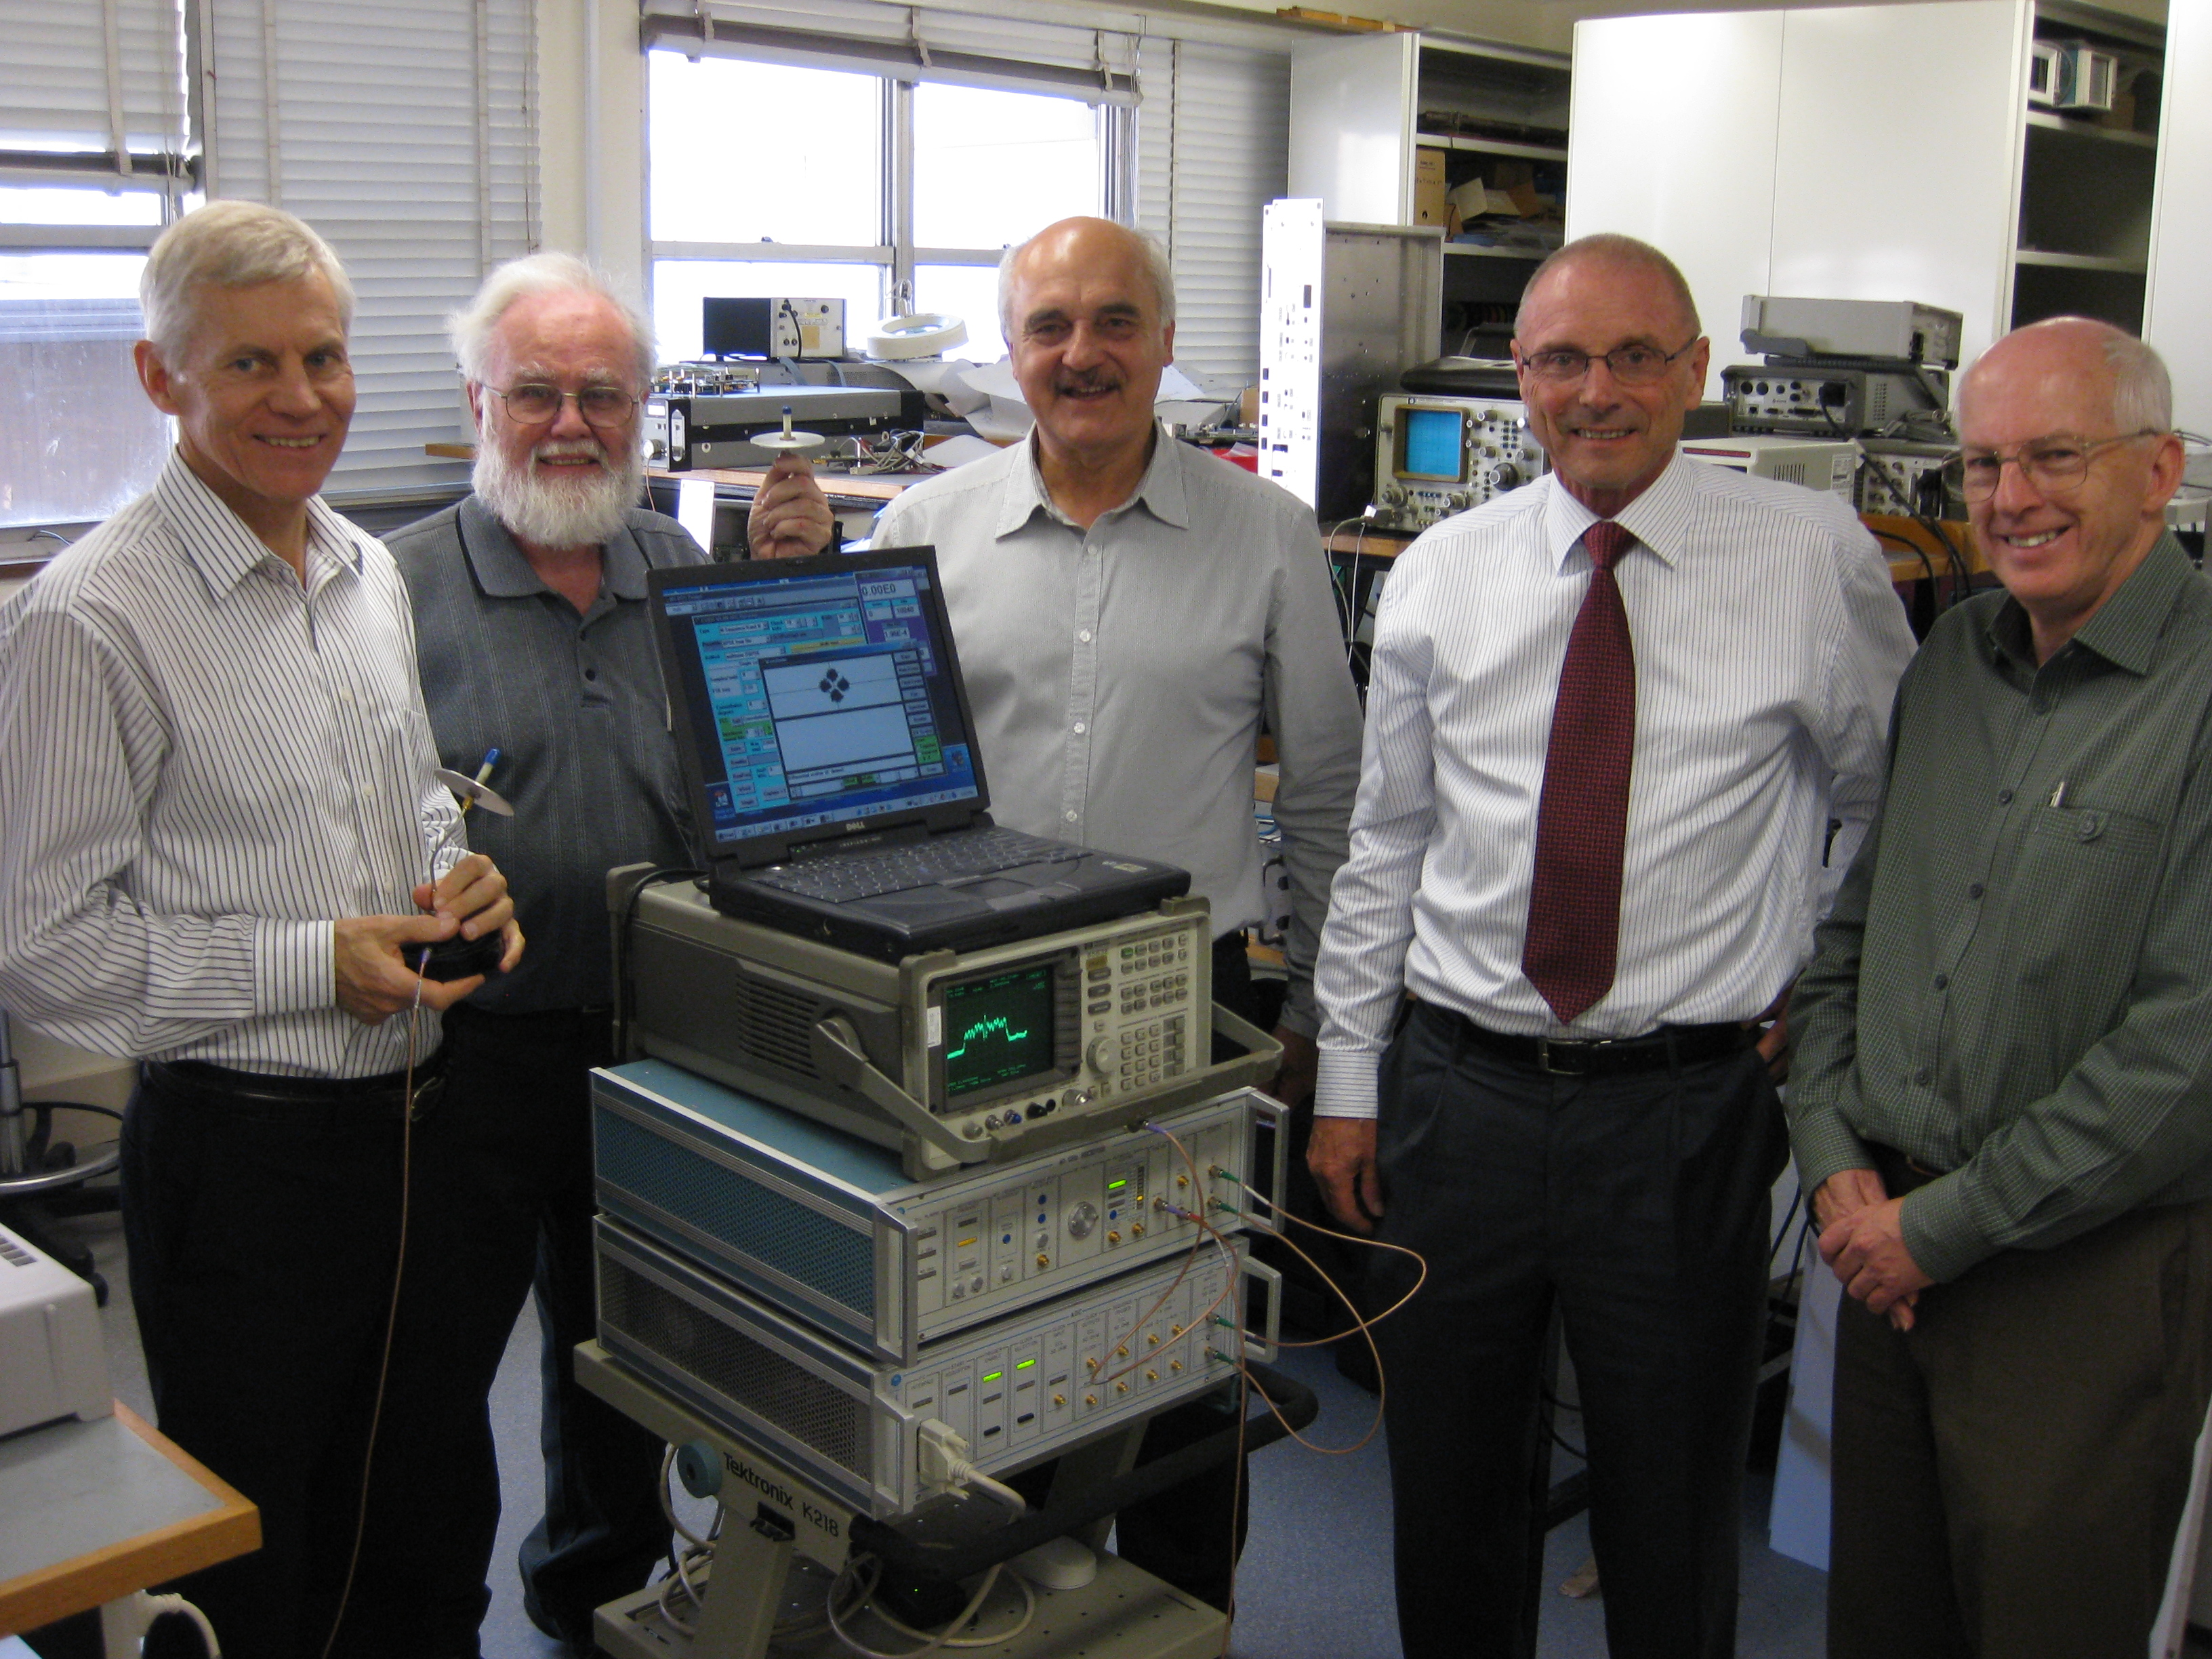 CSIRO's WLAN team standing in the lab with the WLAN testbed.